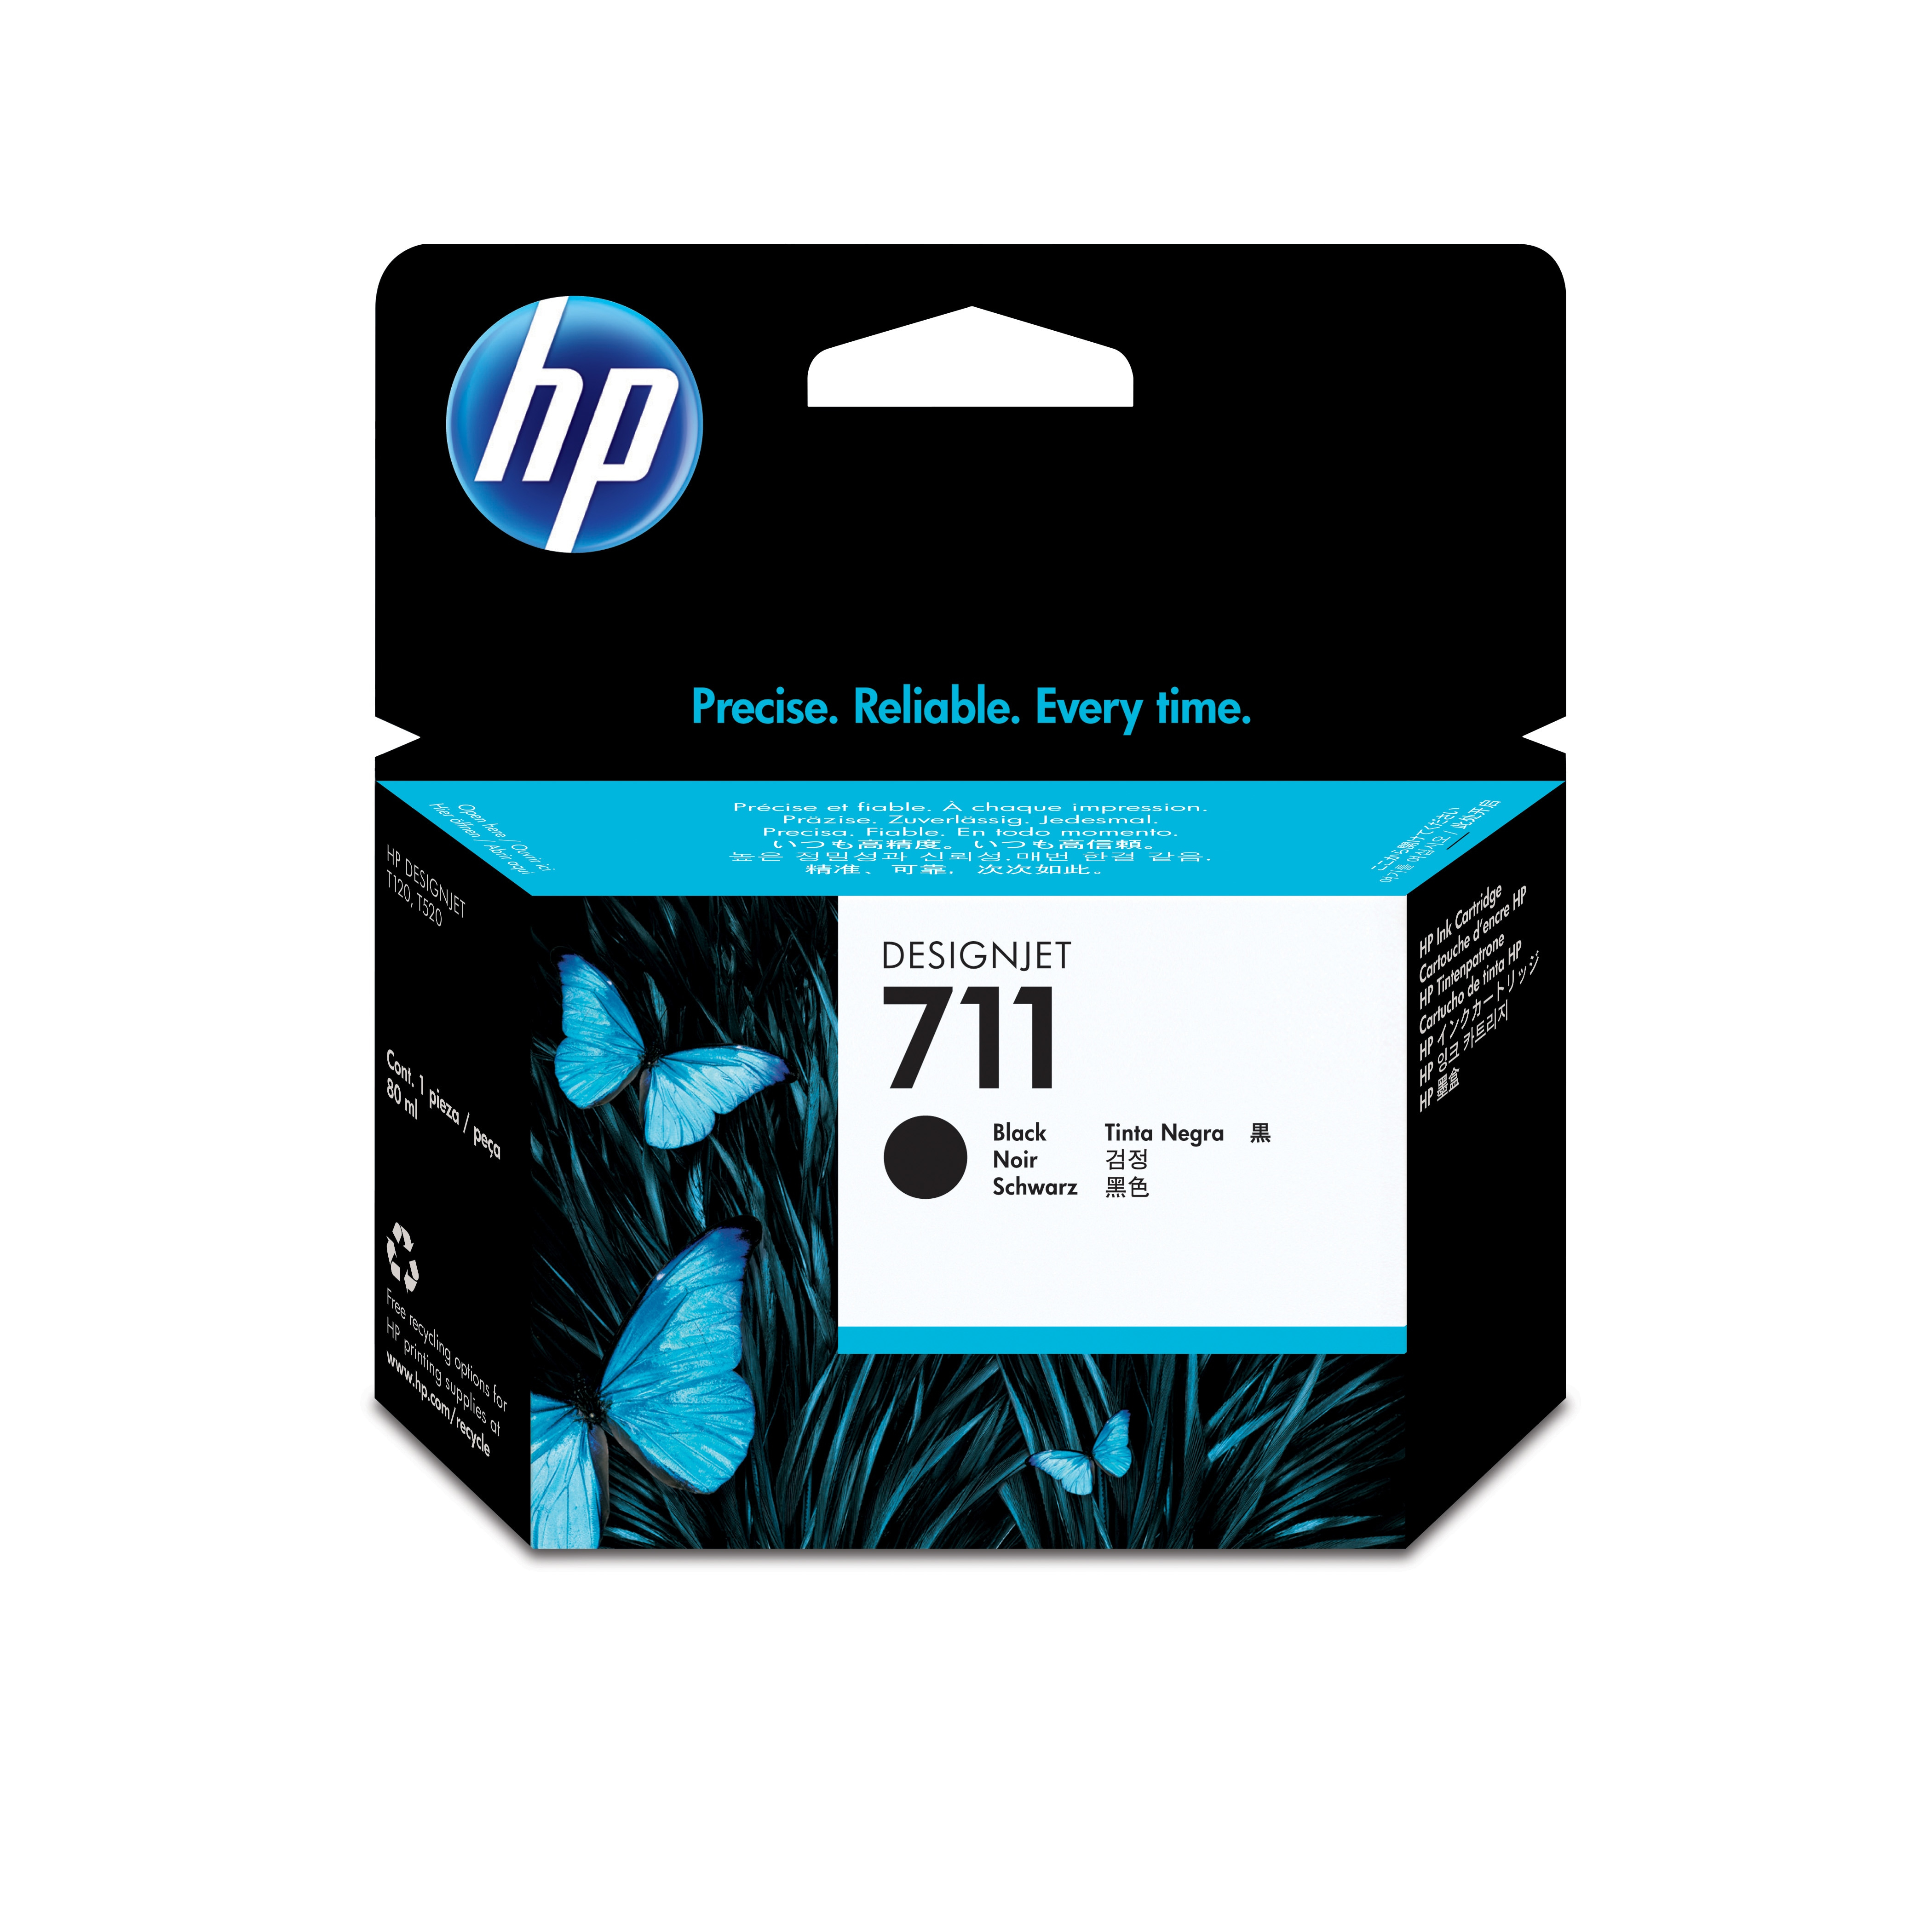 BB Comp HP CZ133A (711) Black Dye Ink Cartridge CZ133A - rem01